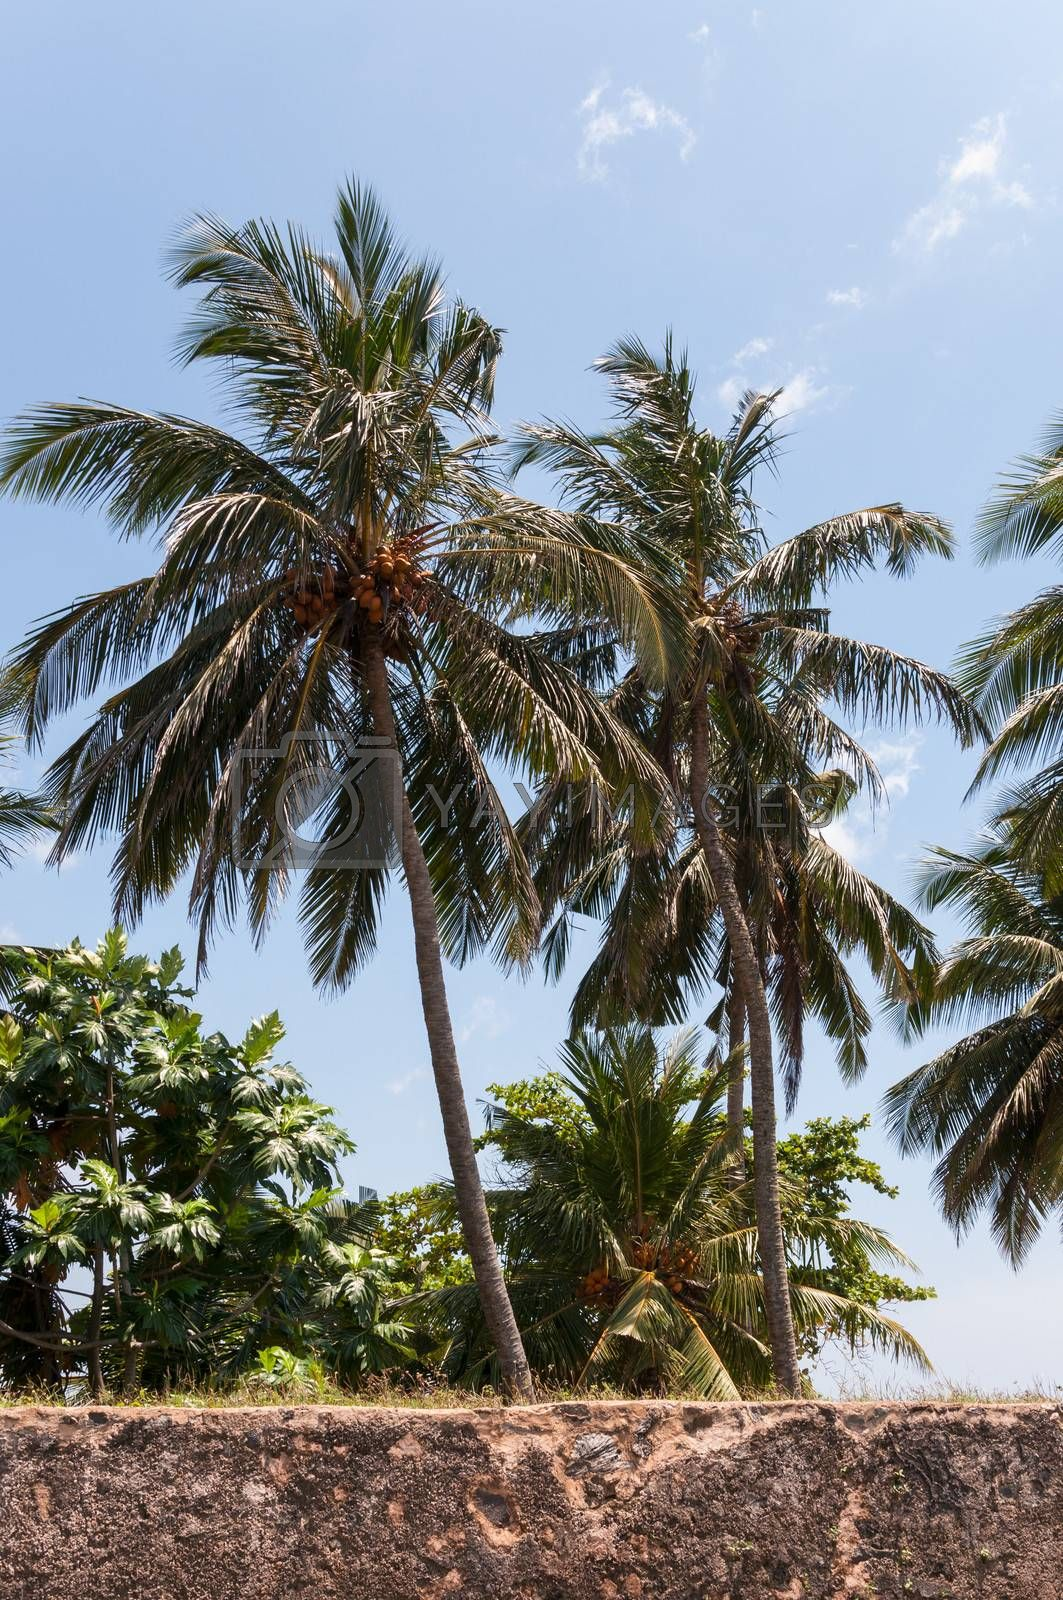 Tropical coconut palms with ripening fruits, Sri Lanka.